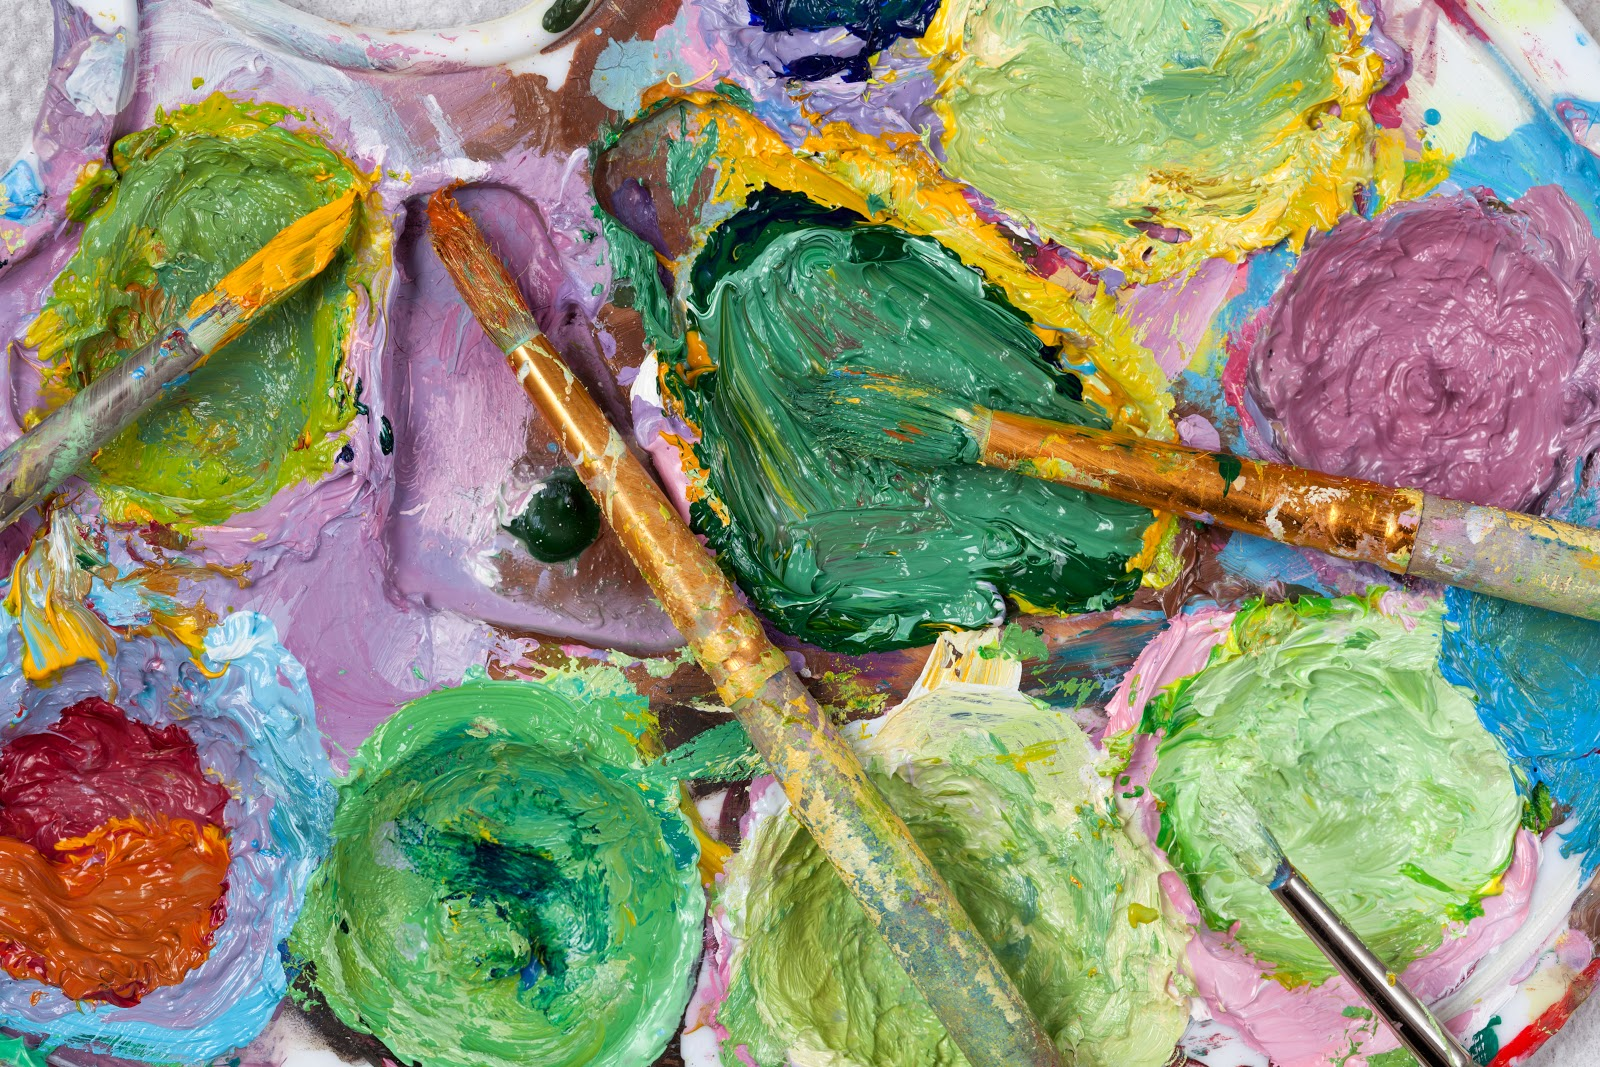 Arts And Elements : The elements of art they are organic to montessori classroom